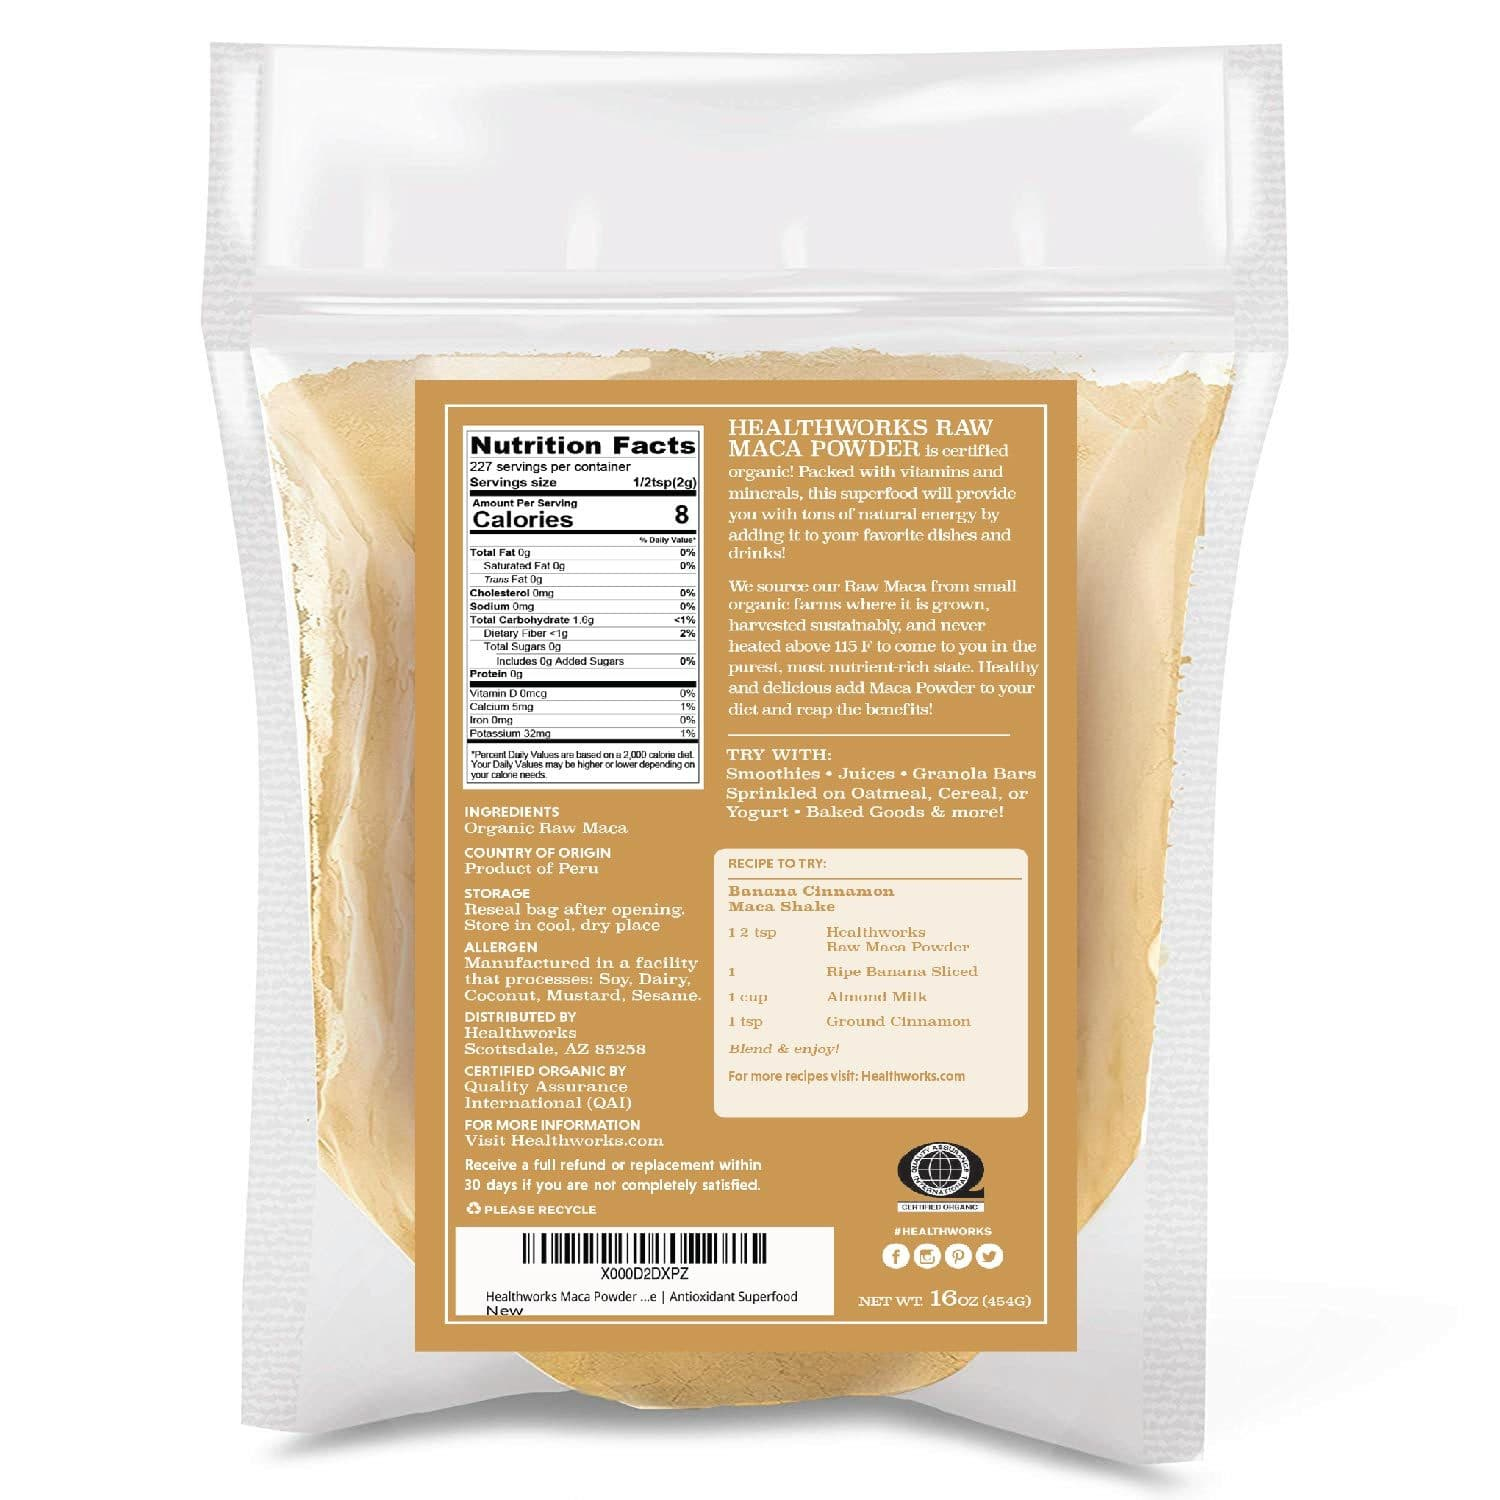 Healthworks Maca Powder Raw Organic, 1lb - Healthworks Superfood Organic